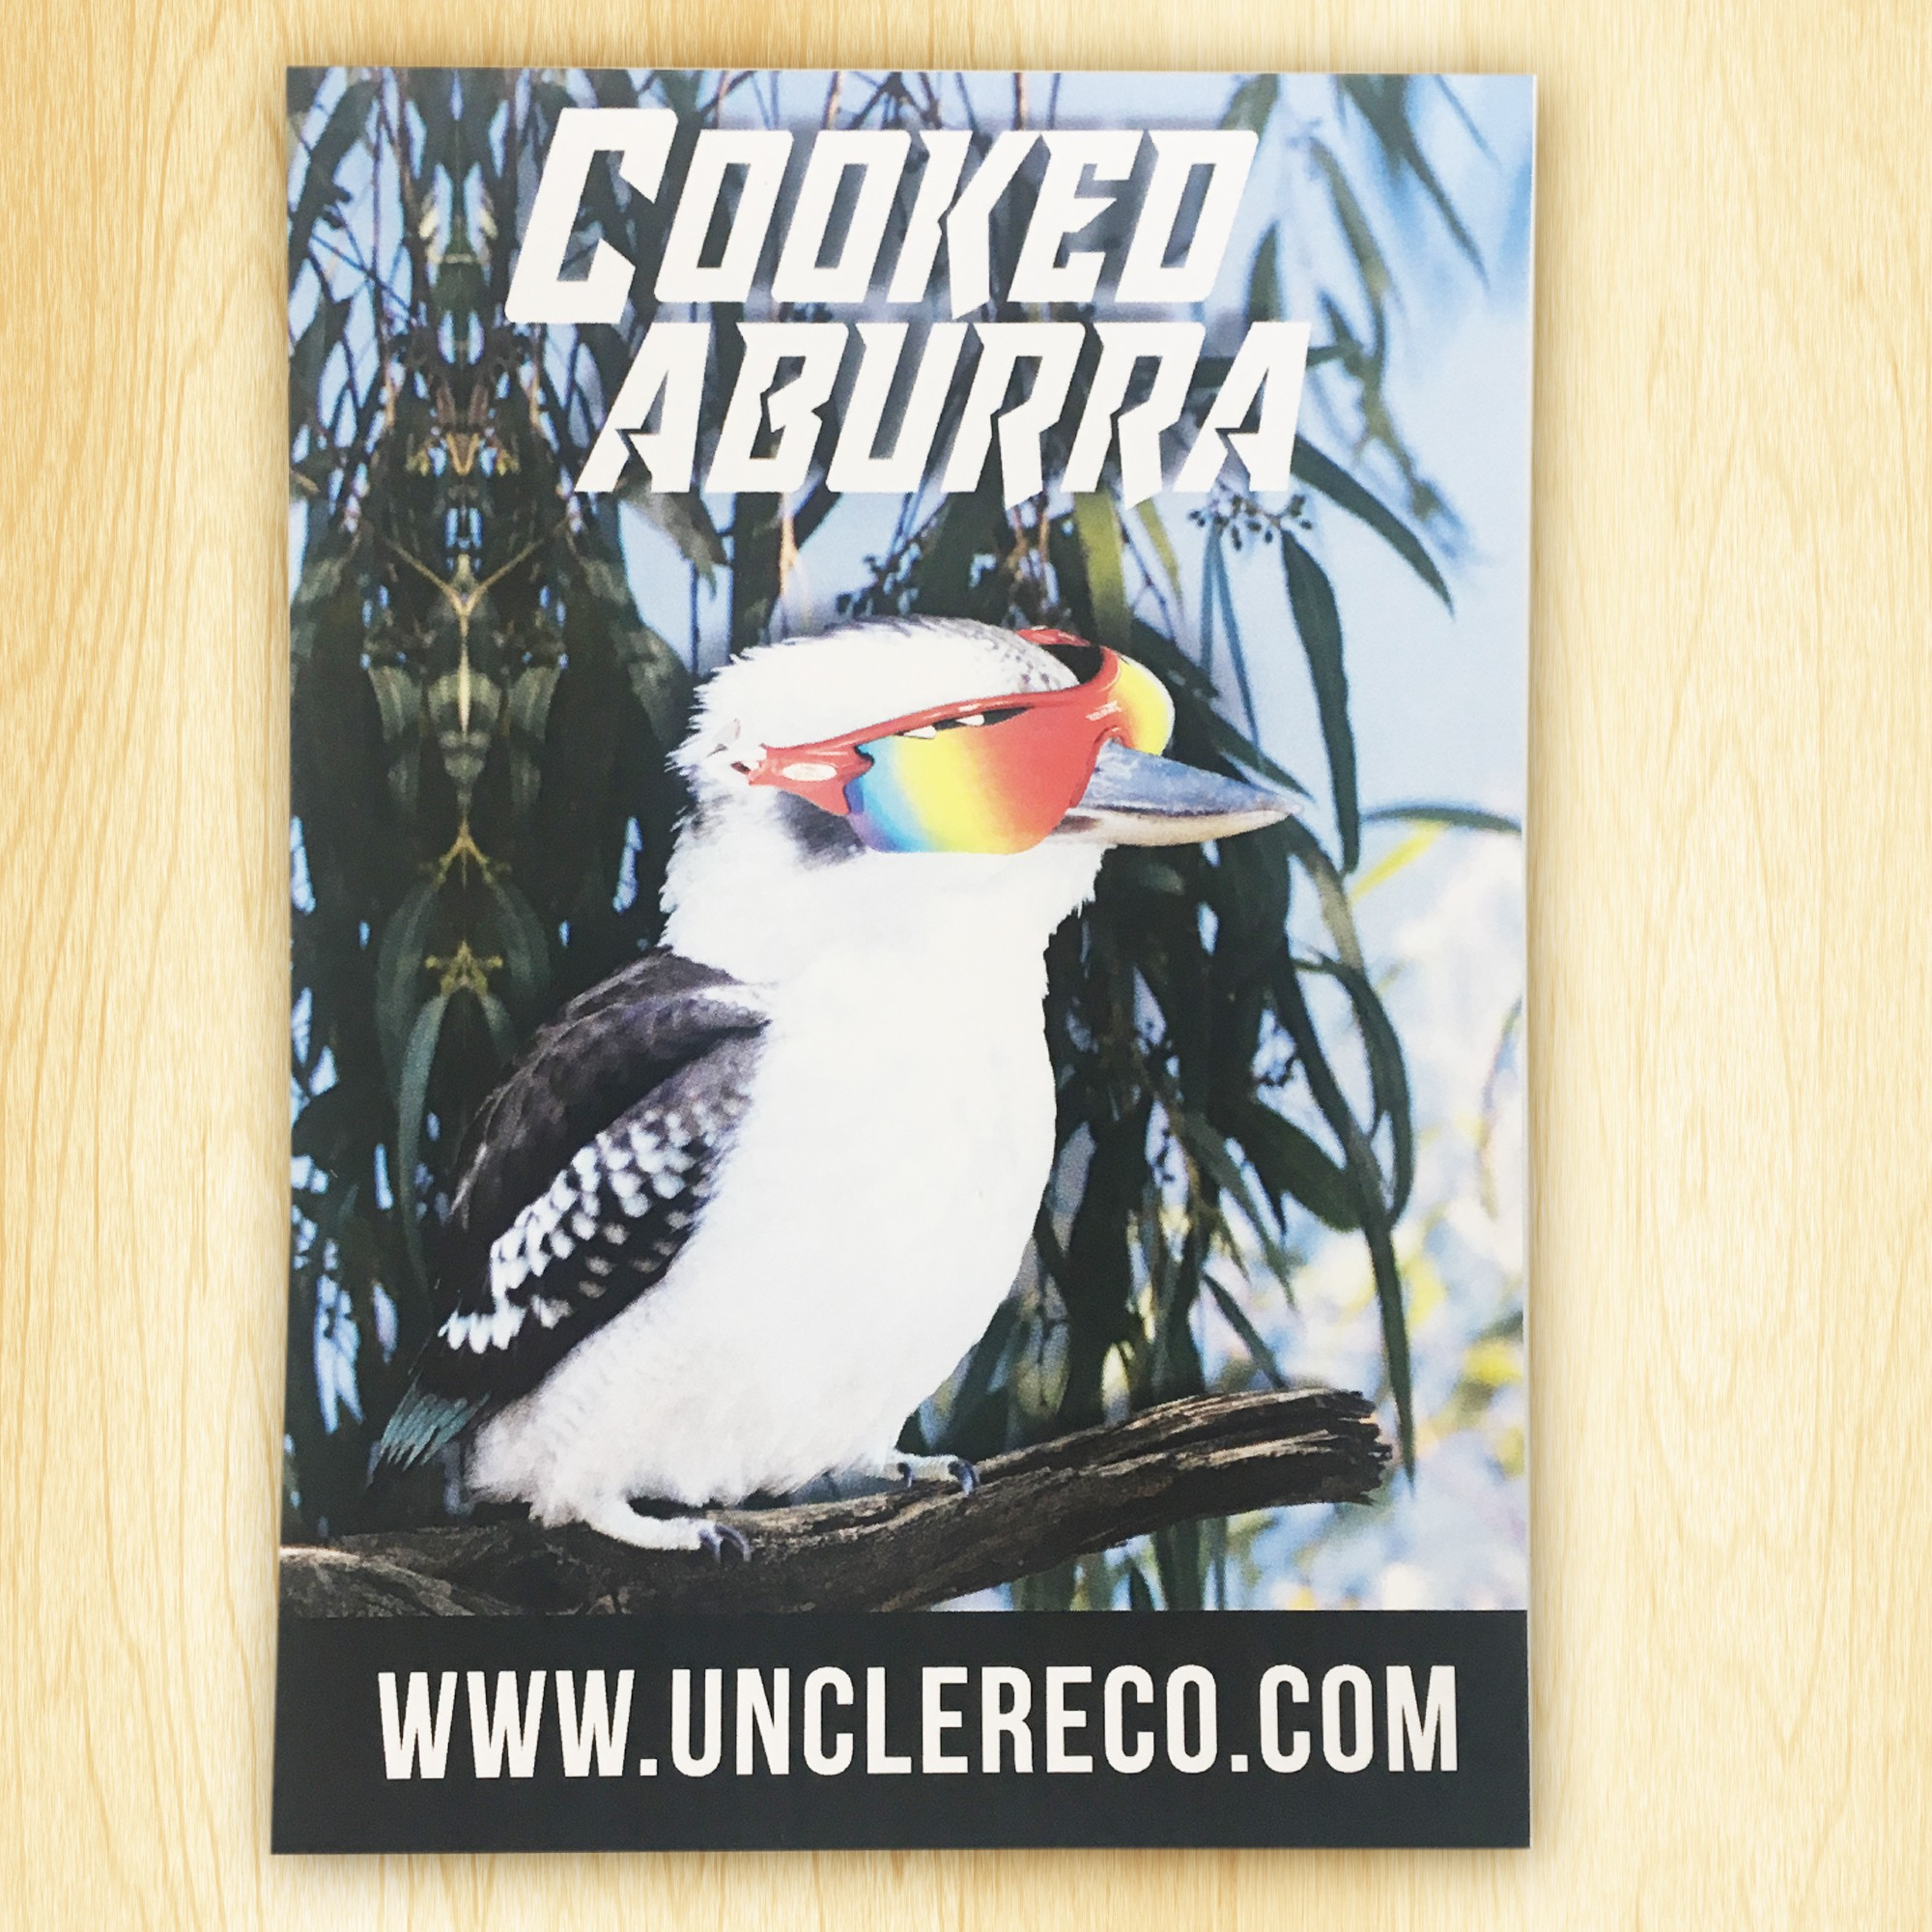 COOKEDABURRA STICKER